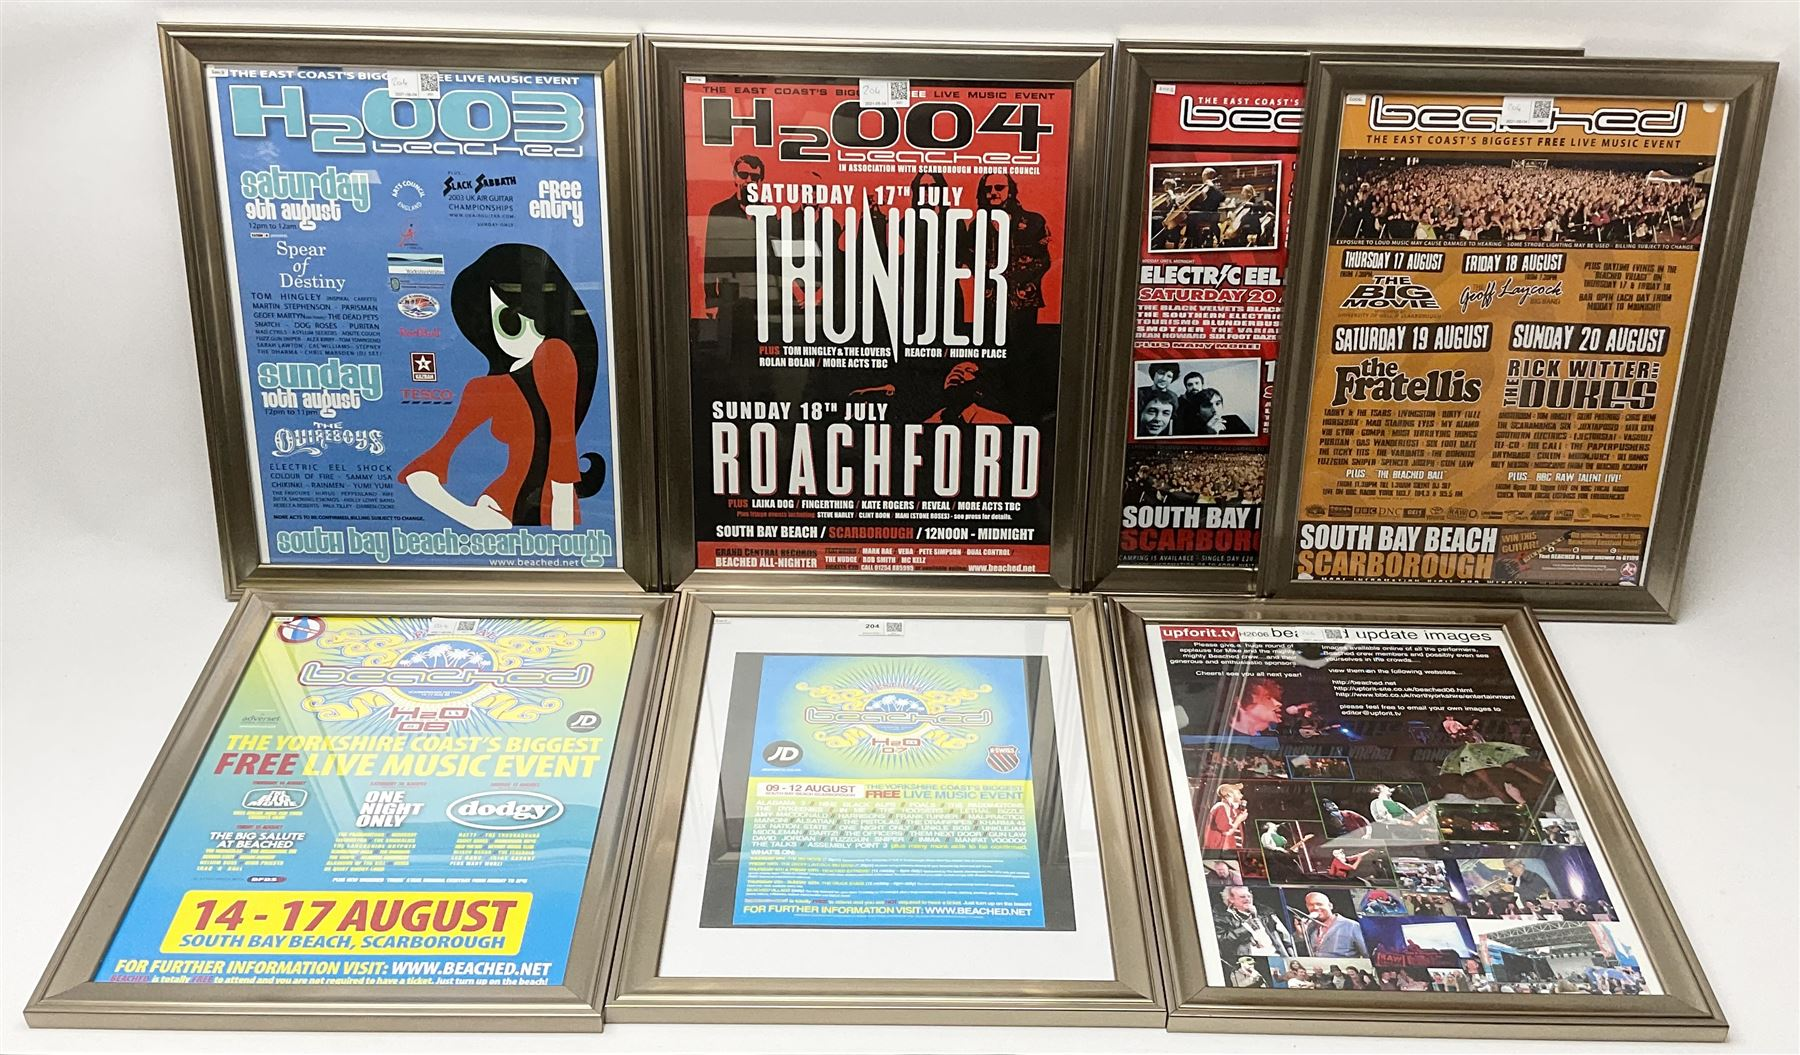 Scarborough Beached Festival - six consecutive framed posters from the years 2003-2008